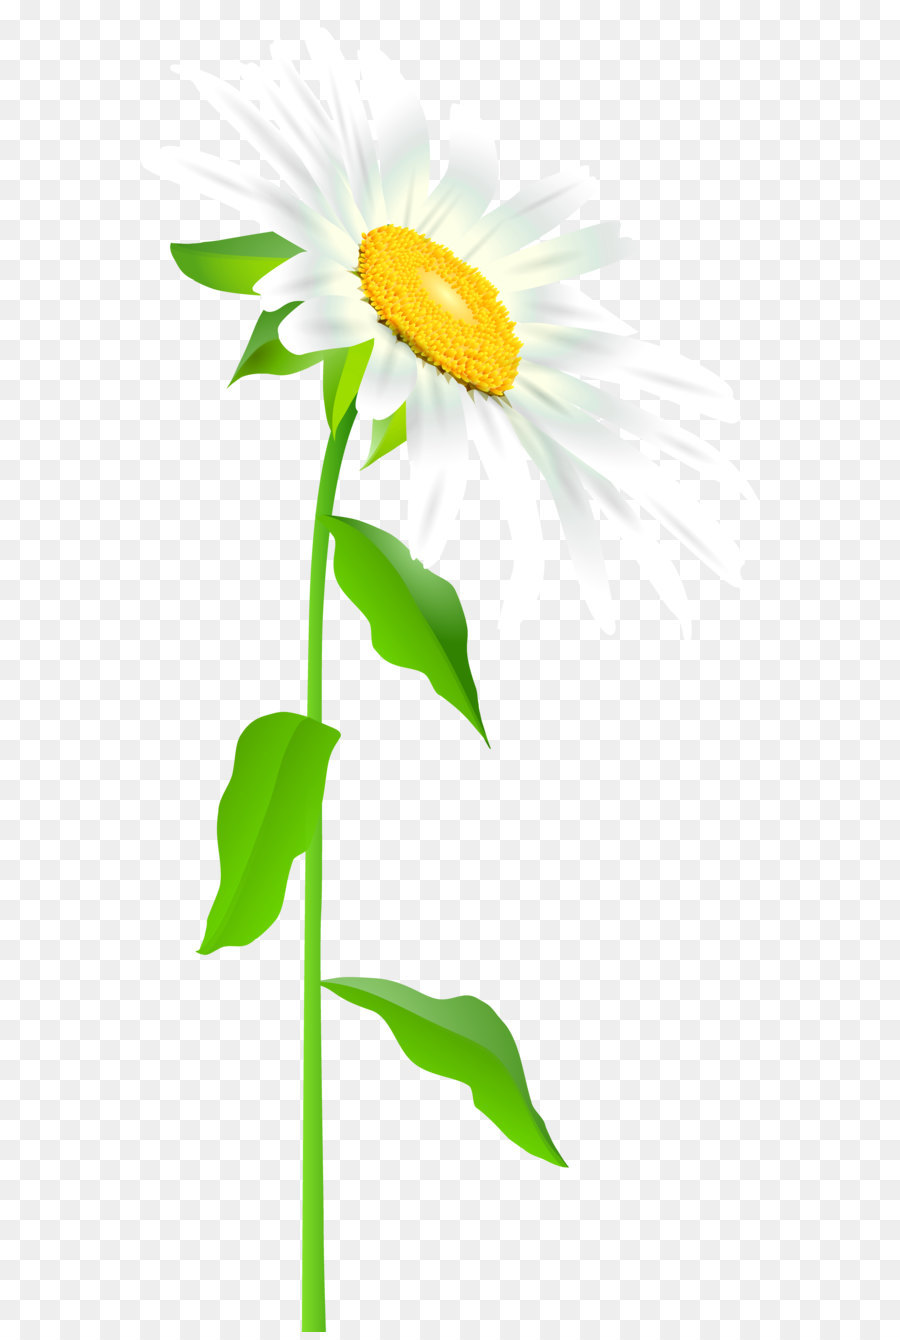 hight resolution of common sunflower text leaf illustration daisy with stem transparent png clip art image png download 3416 7000 free transparent easter bunny png